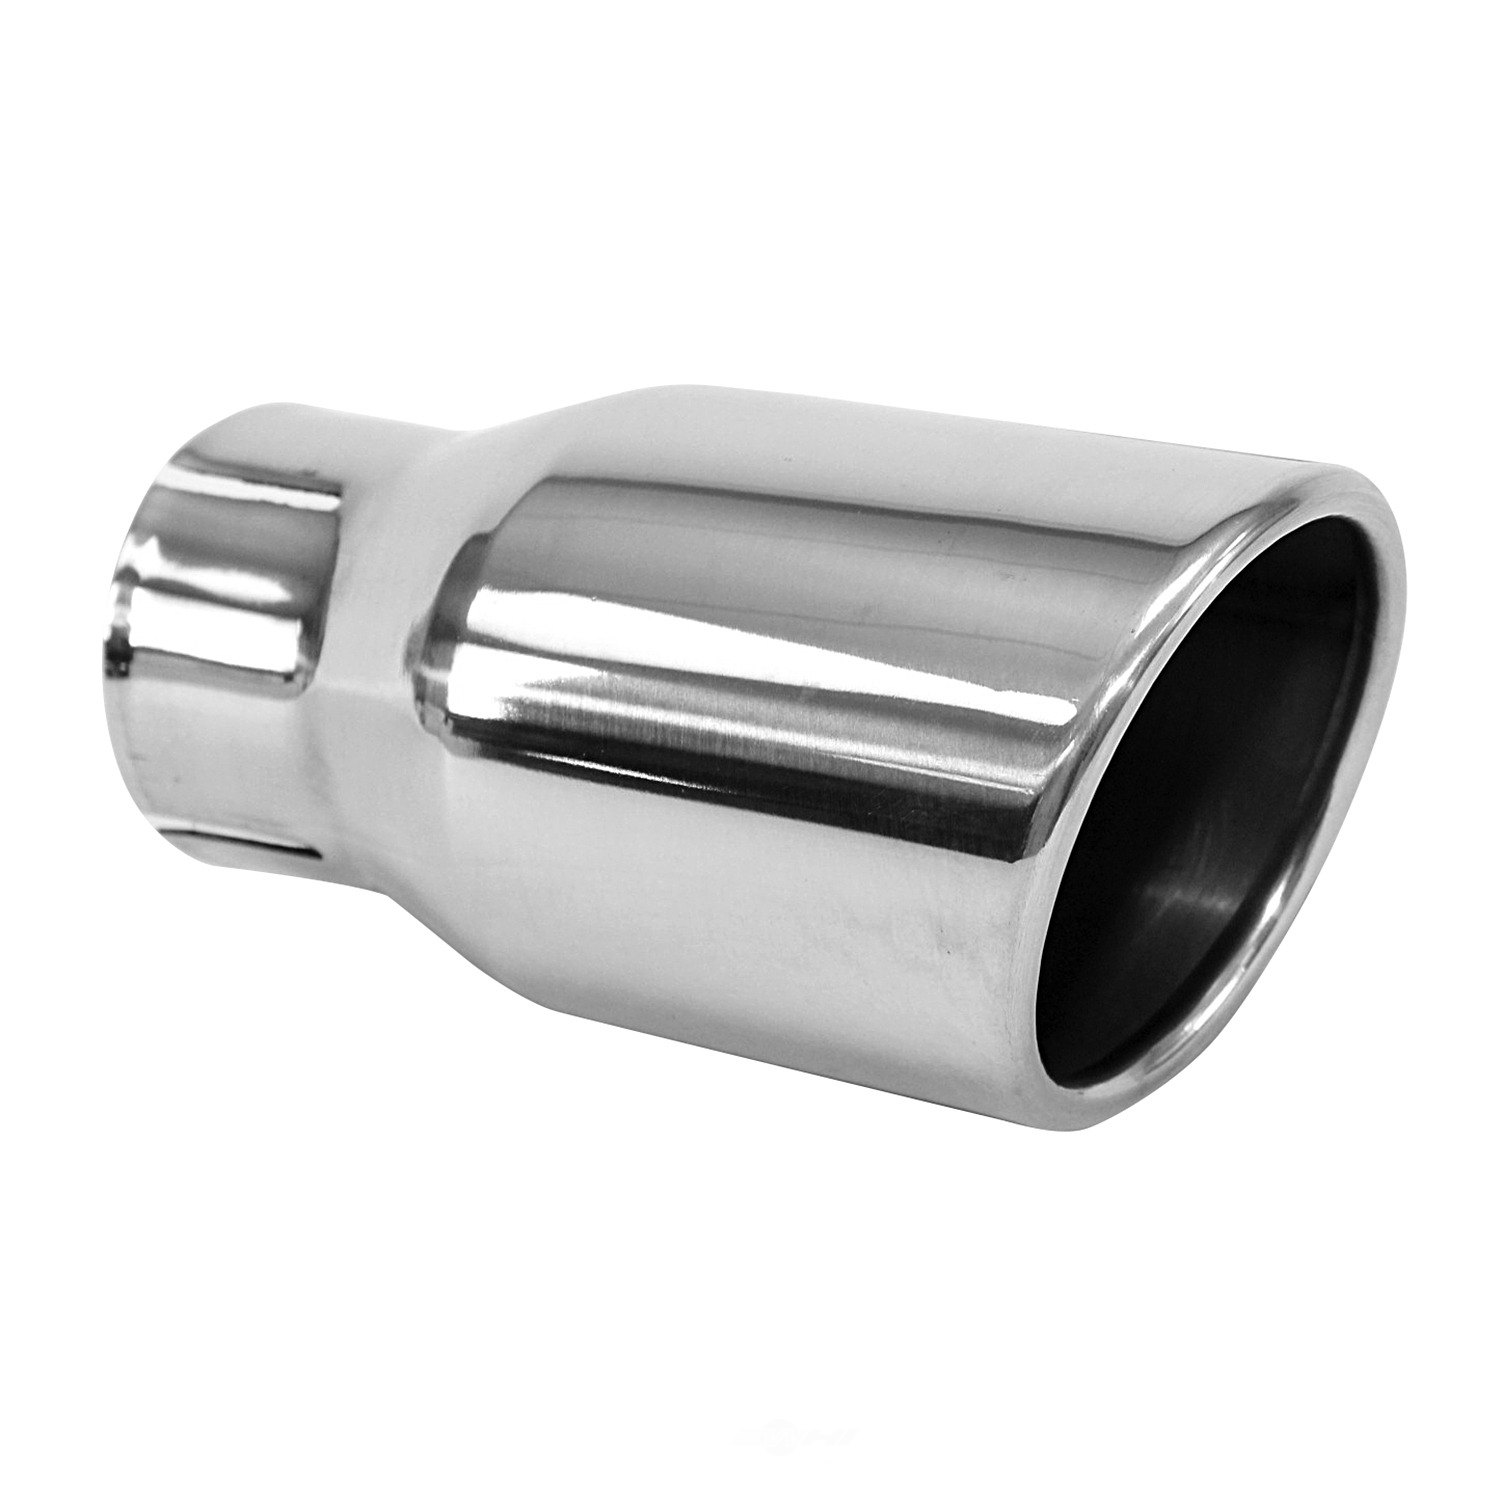 AP EXHAUST W/FEDERAL CONVERTER - Exhaust Tail Pipe Tip - APF ST1254S